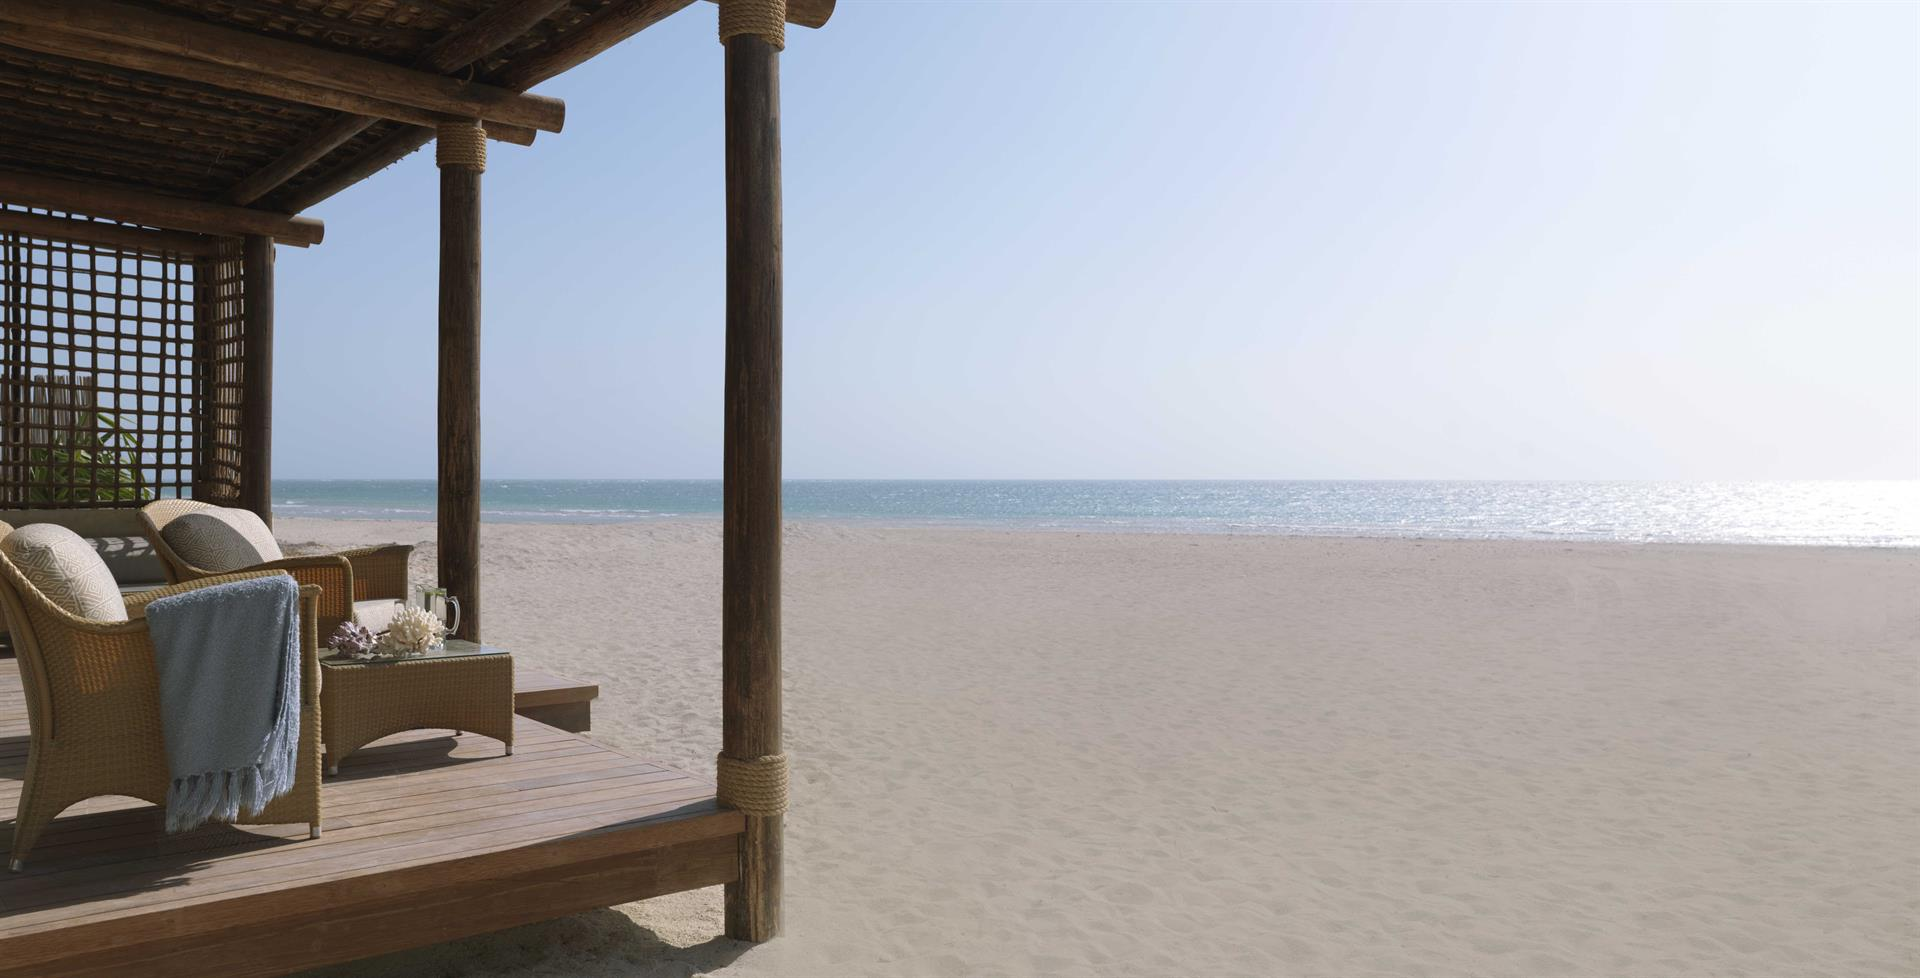 Speciale early booking all'Anantara Eastern Mangroves agli Anantara Sir Bani Yas Island da prendere al volo!